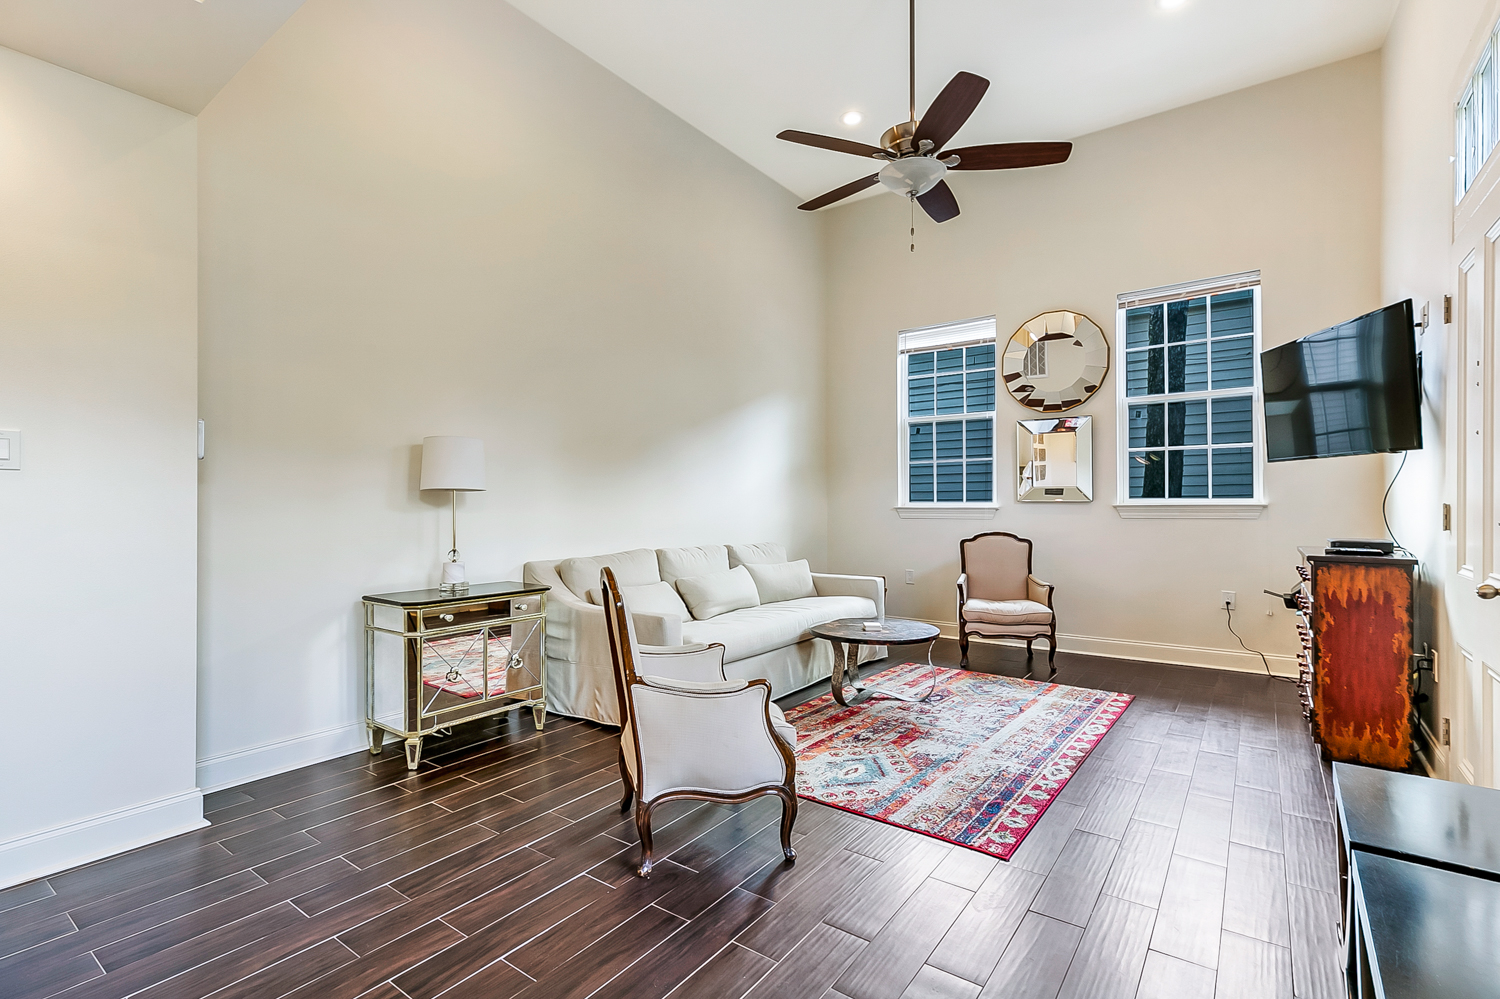 Garden District, Apartment, 1 beds, 1.0 baths, $2800 per month New Orleans Rental - devie image_4